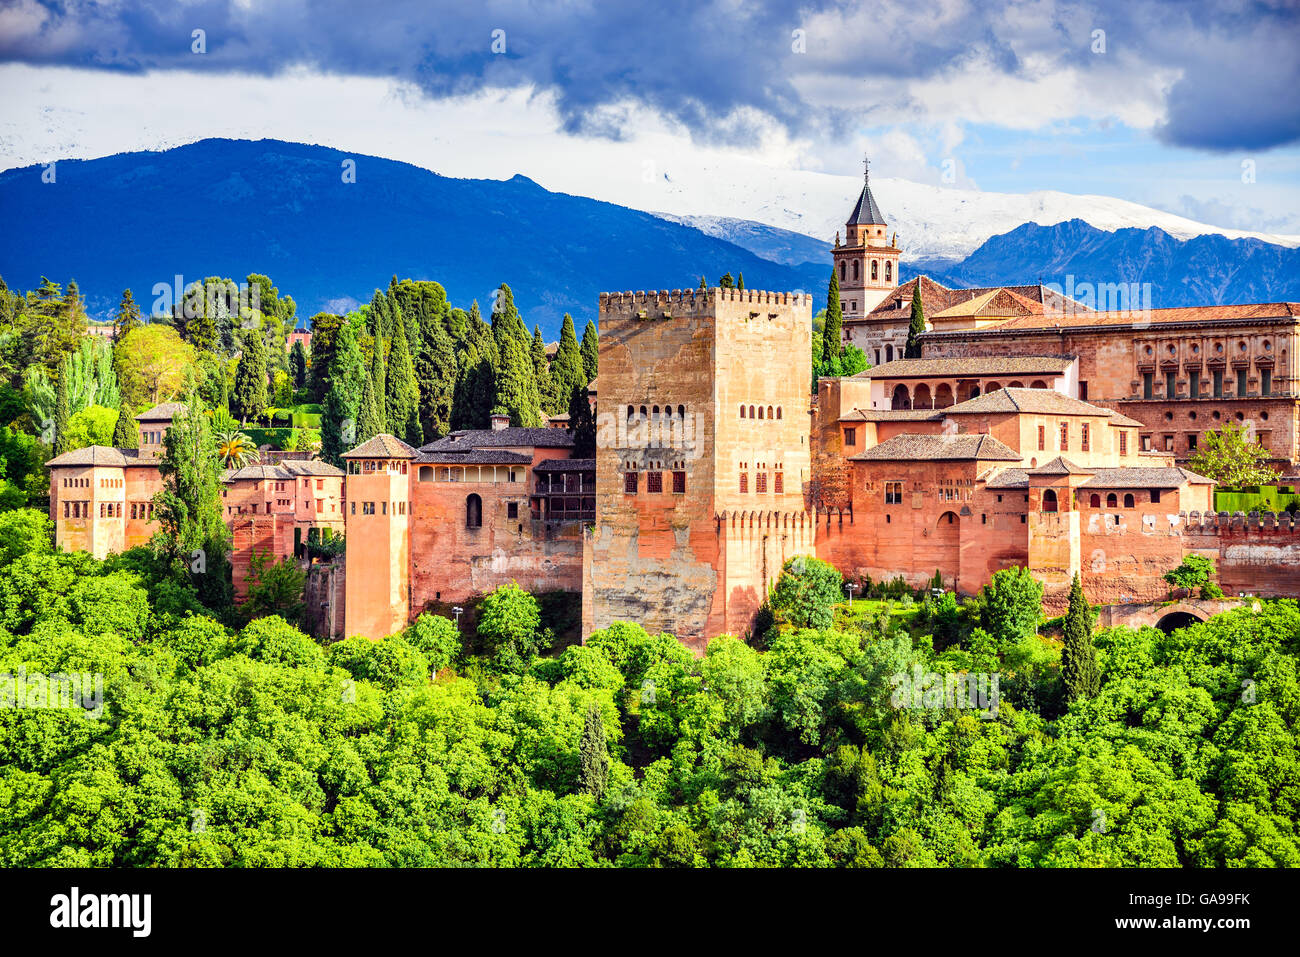 Granada, Spain. Famous Alhambra, Nasrid Emirate fortress, European travel landmark in Andalusia. - Stock Image